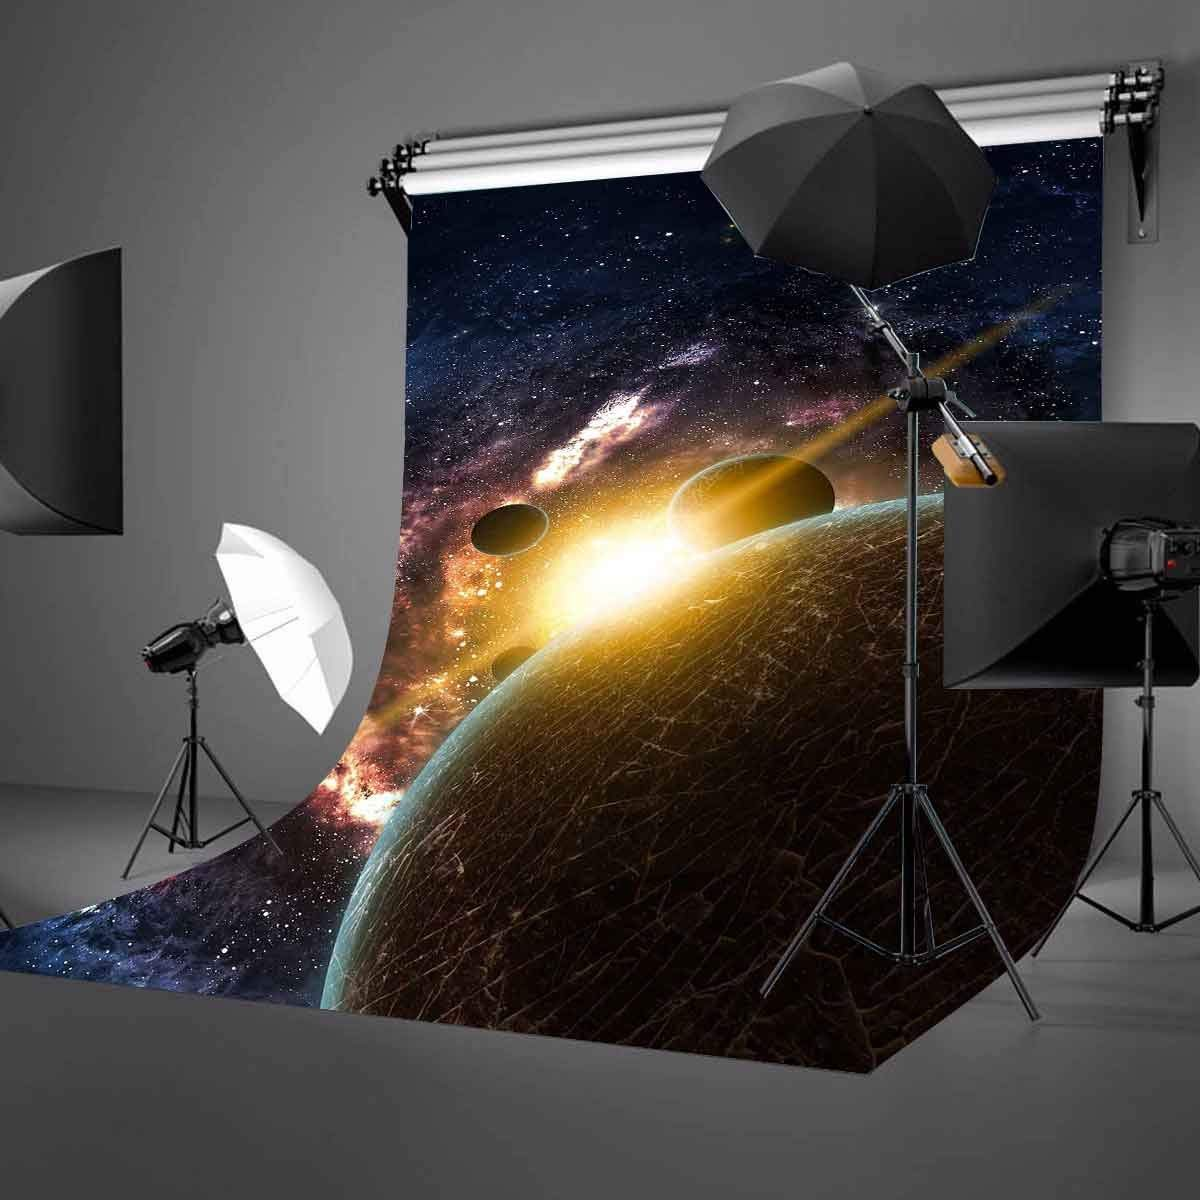 Image 2 - 5x7ft Starry Sky Backdrop Dark Color Cosmic Science Photography Background and Studio Photography Backdrop Props-in Photo Studio Accessories from Consumer Electronics